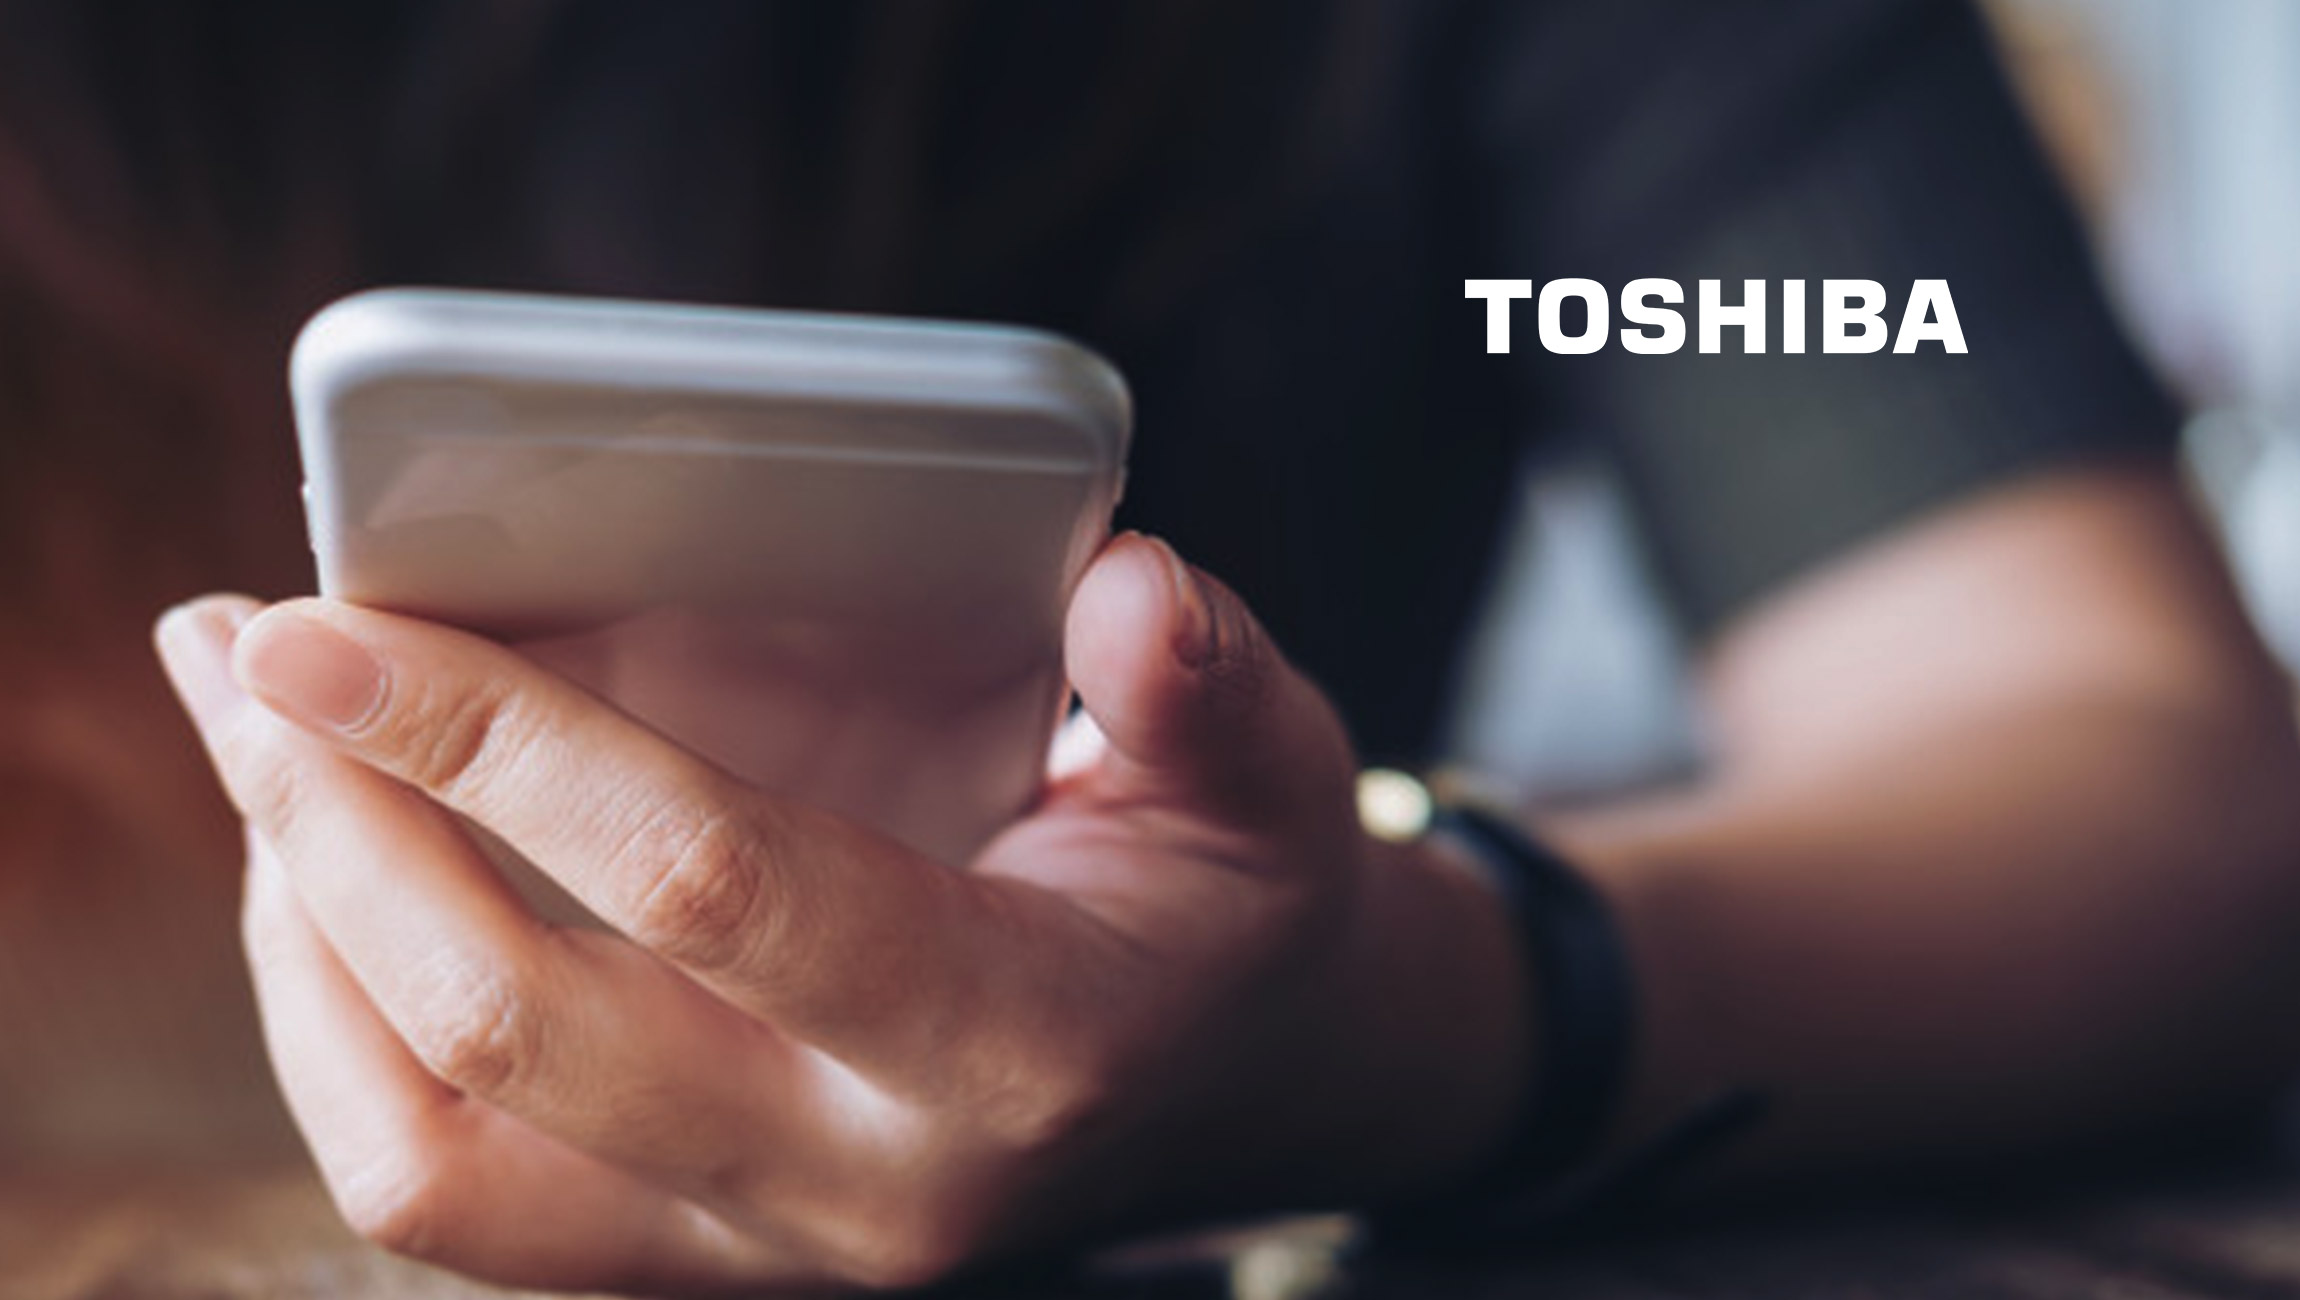 Toshiba Launches ELERA Unified Commerce Platform to Accelerate Path to Frictionless